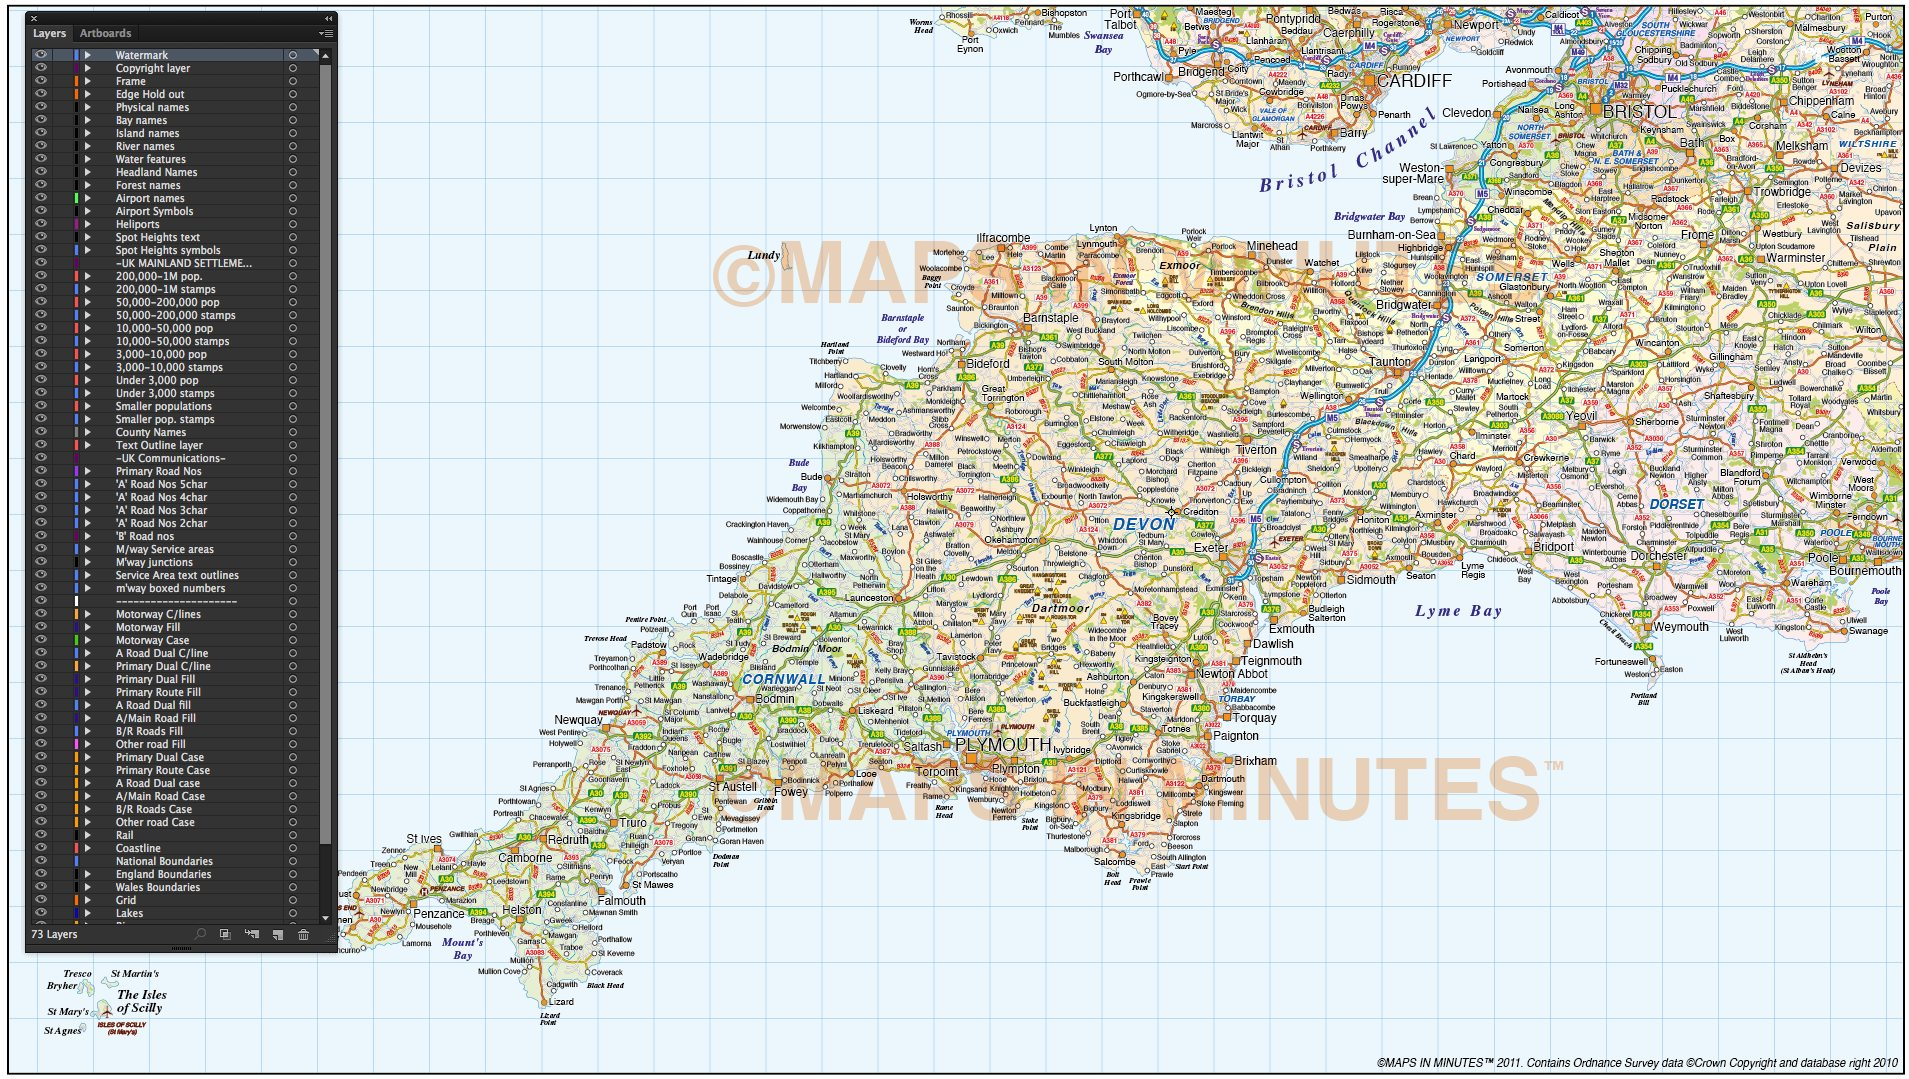 Show Map Of England.South West England County Road And Rail Map At 750k Scale In